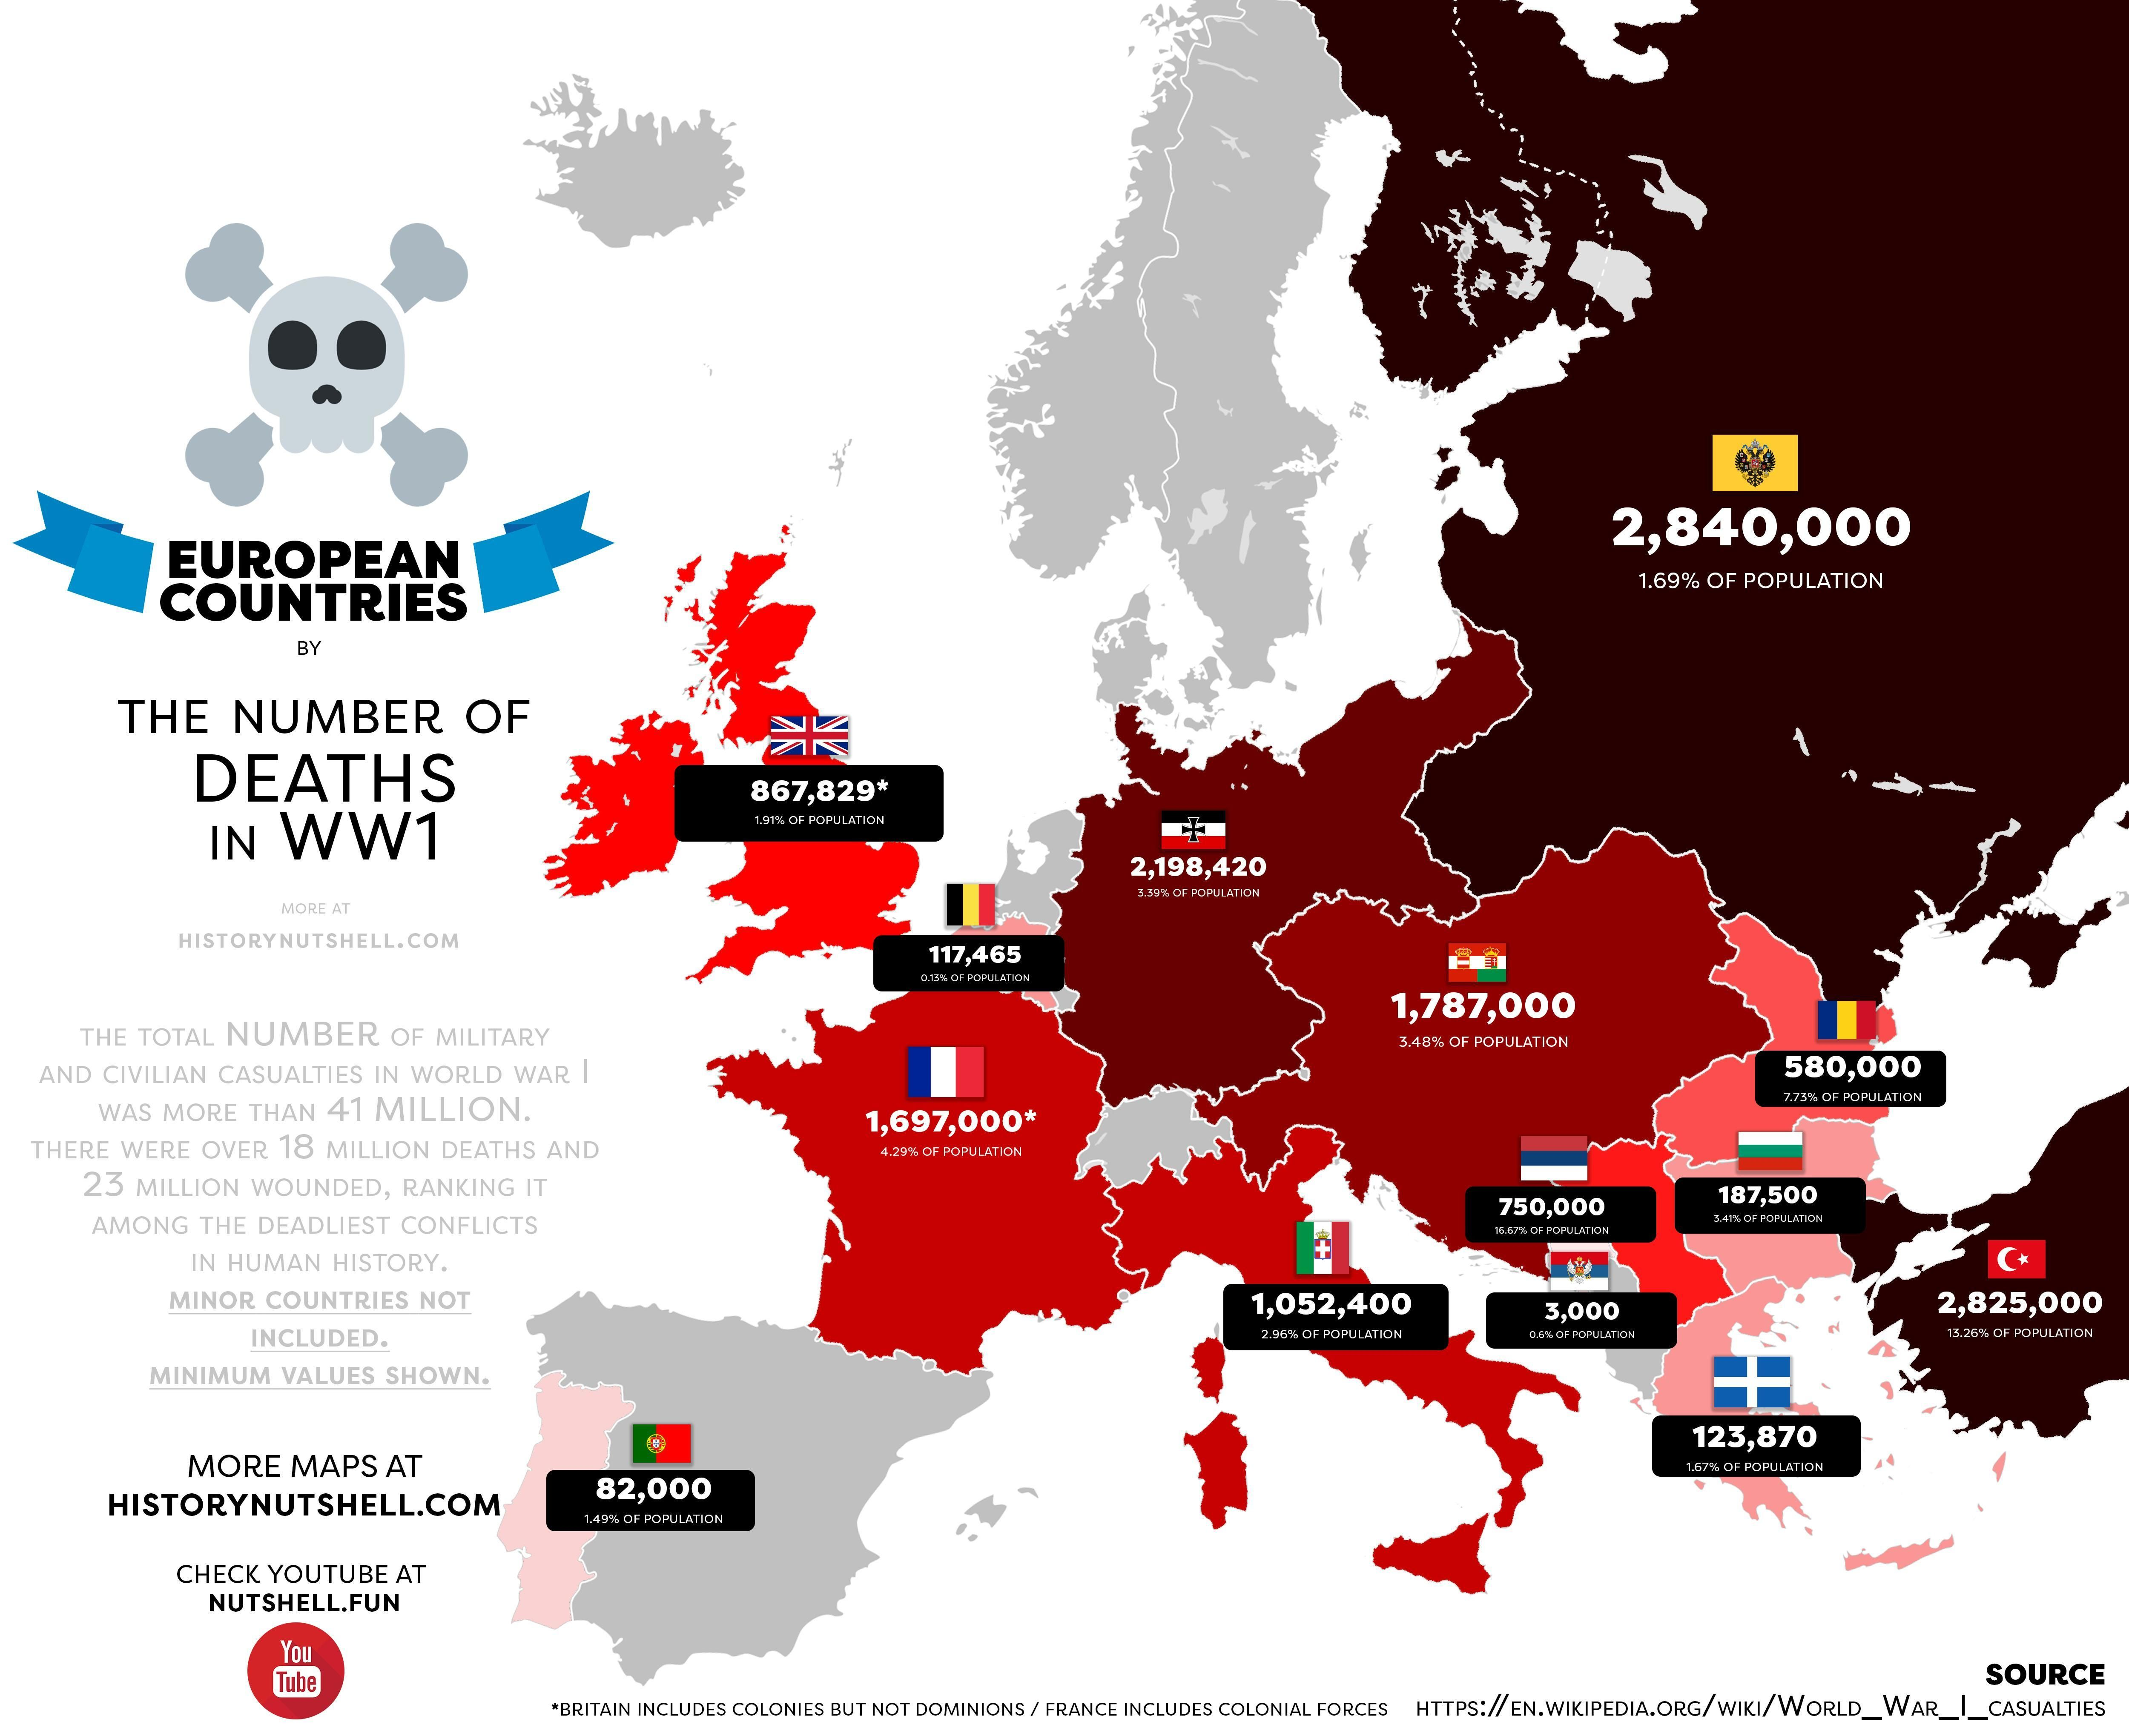 S In Ww1 By European Country Europe World Wars